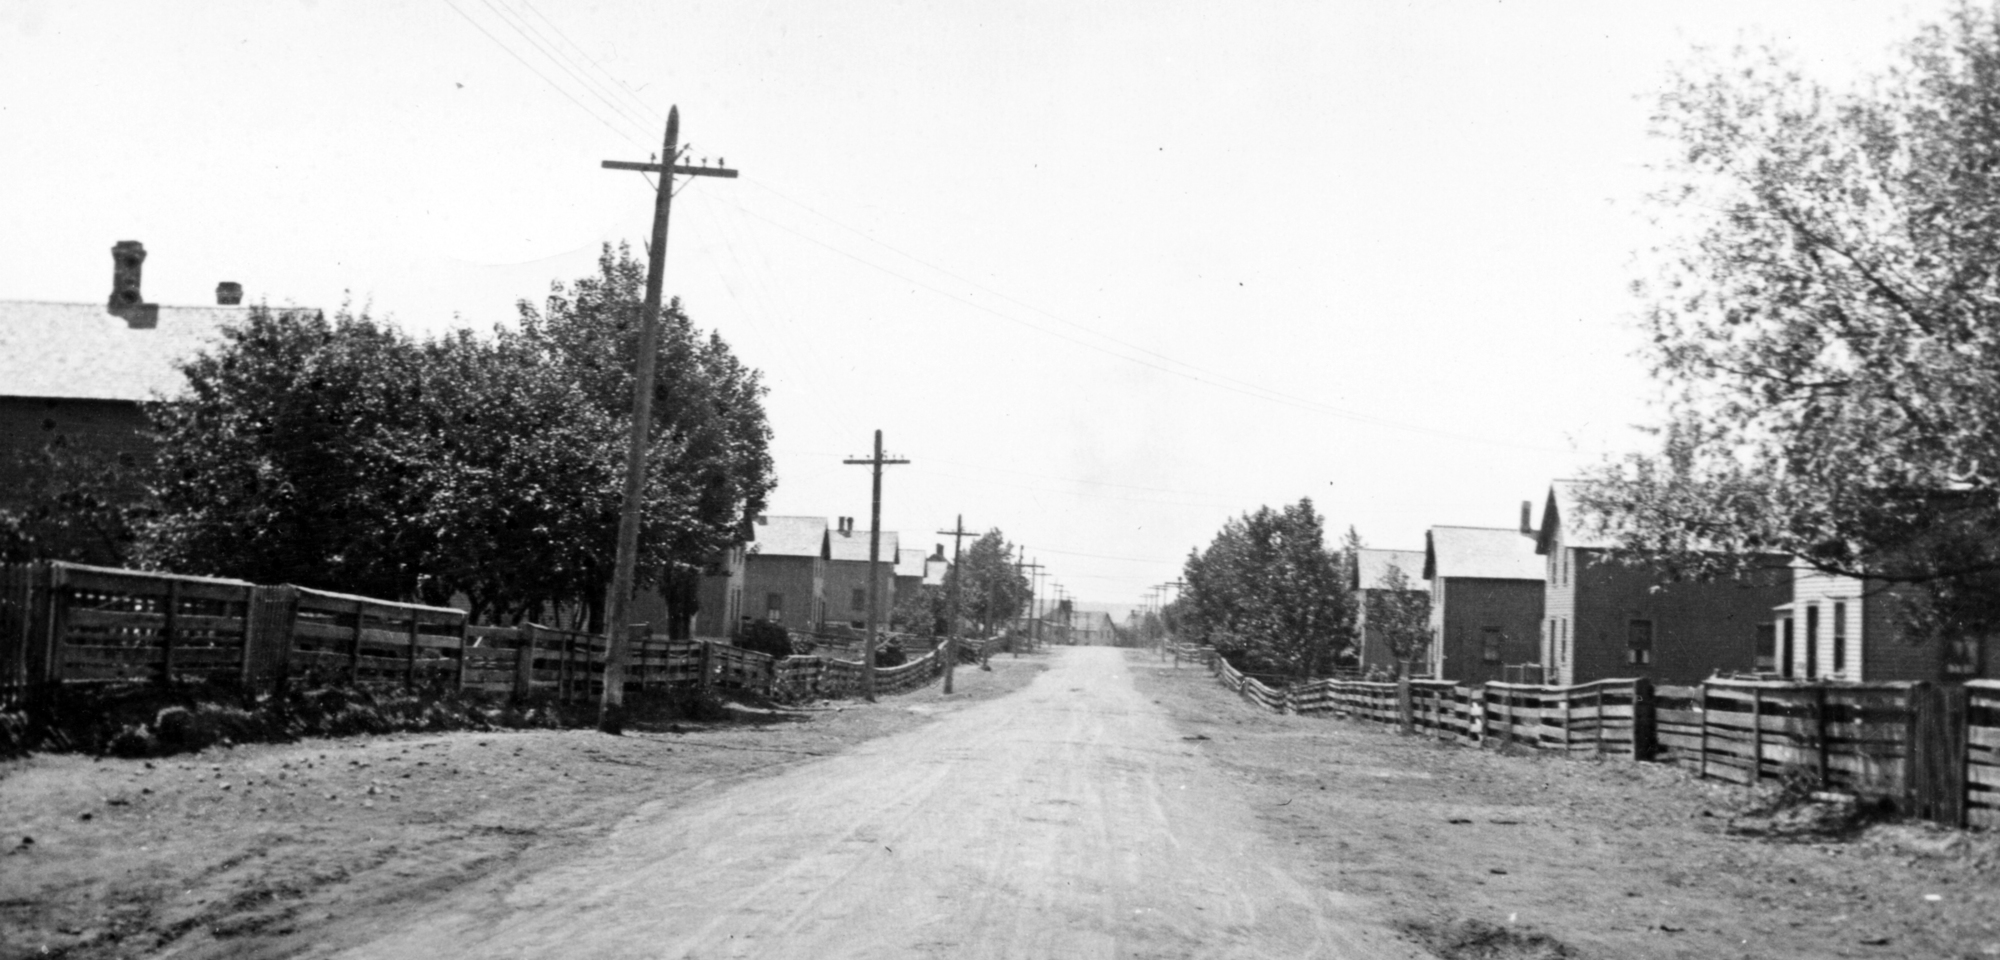 Two-story homes lined the streets of the mining town of Mohawk as shown in this photo from 1921. (photo courtesy of Archives of Michigan)